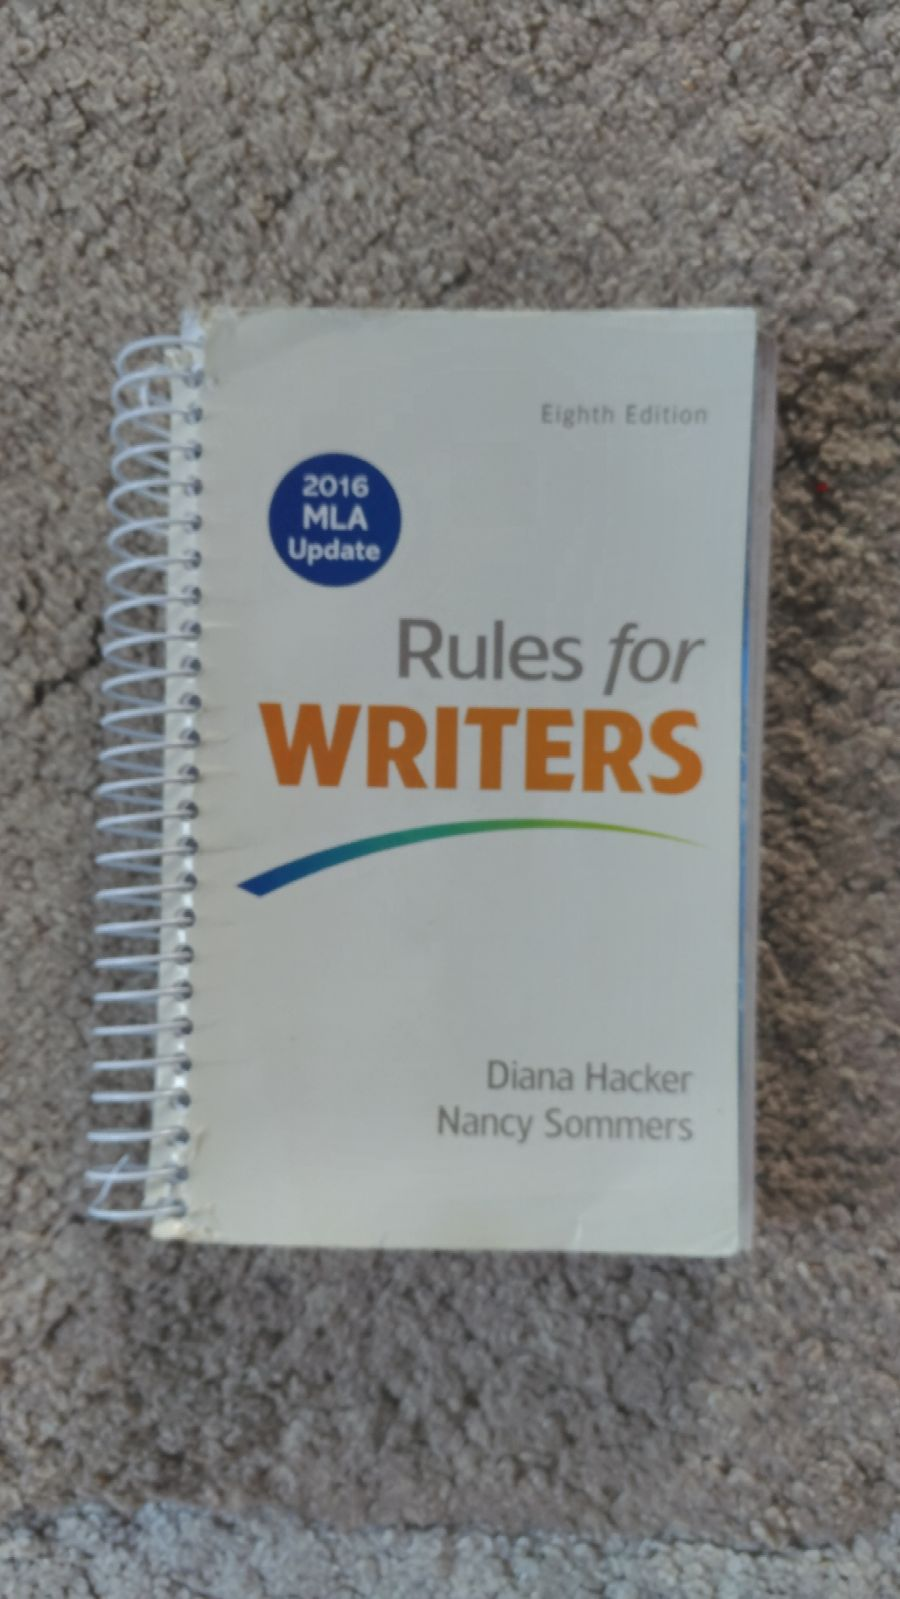 Rules for Writers 8th Edition